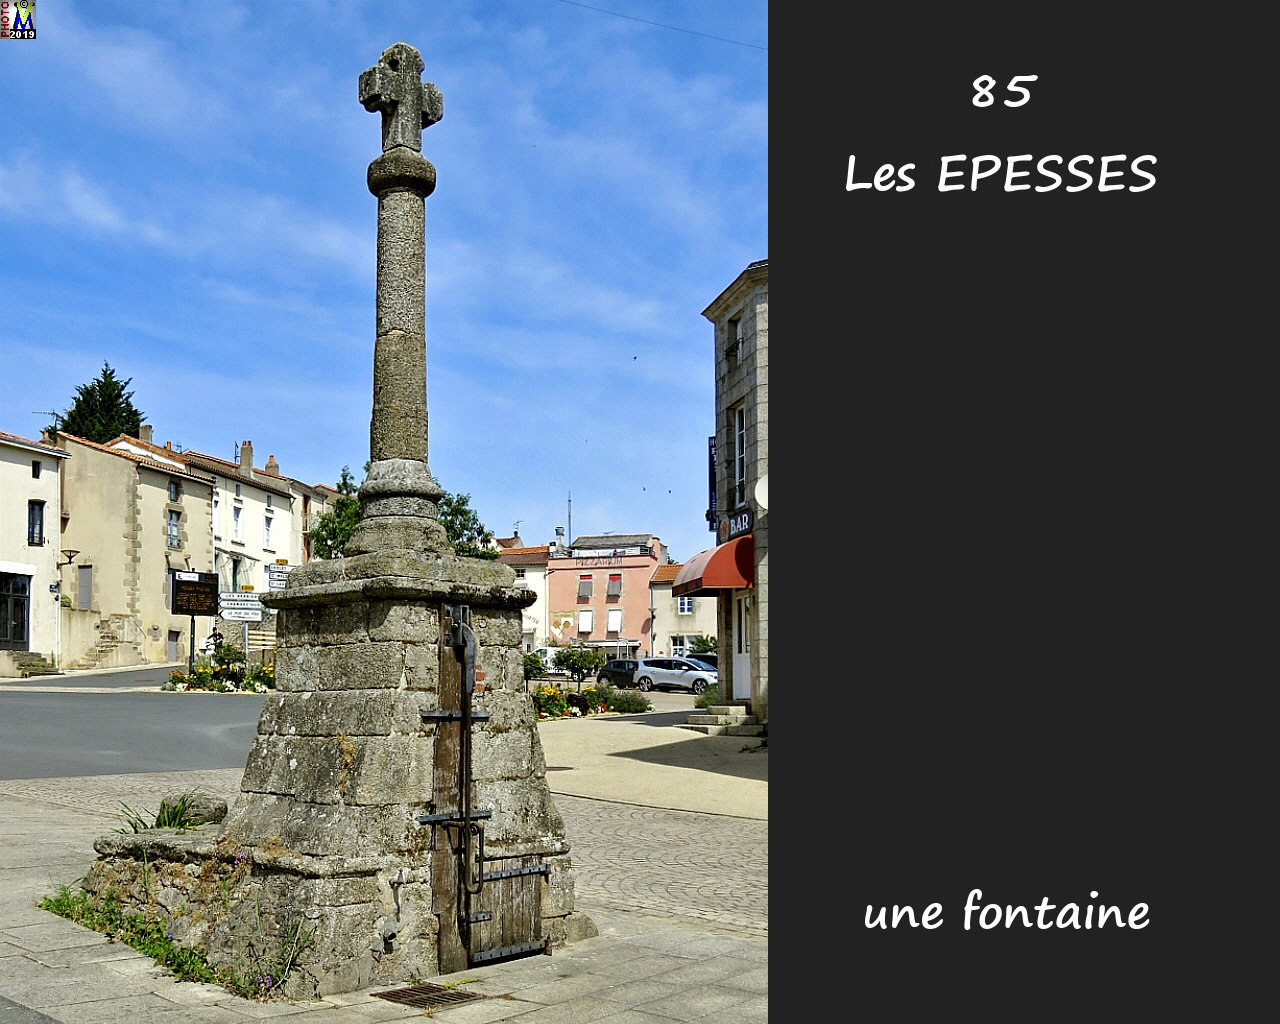 85EPESSES_fontaine_1000.jpg